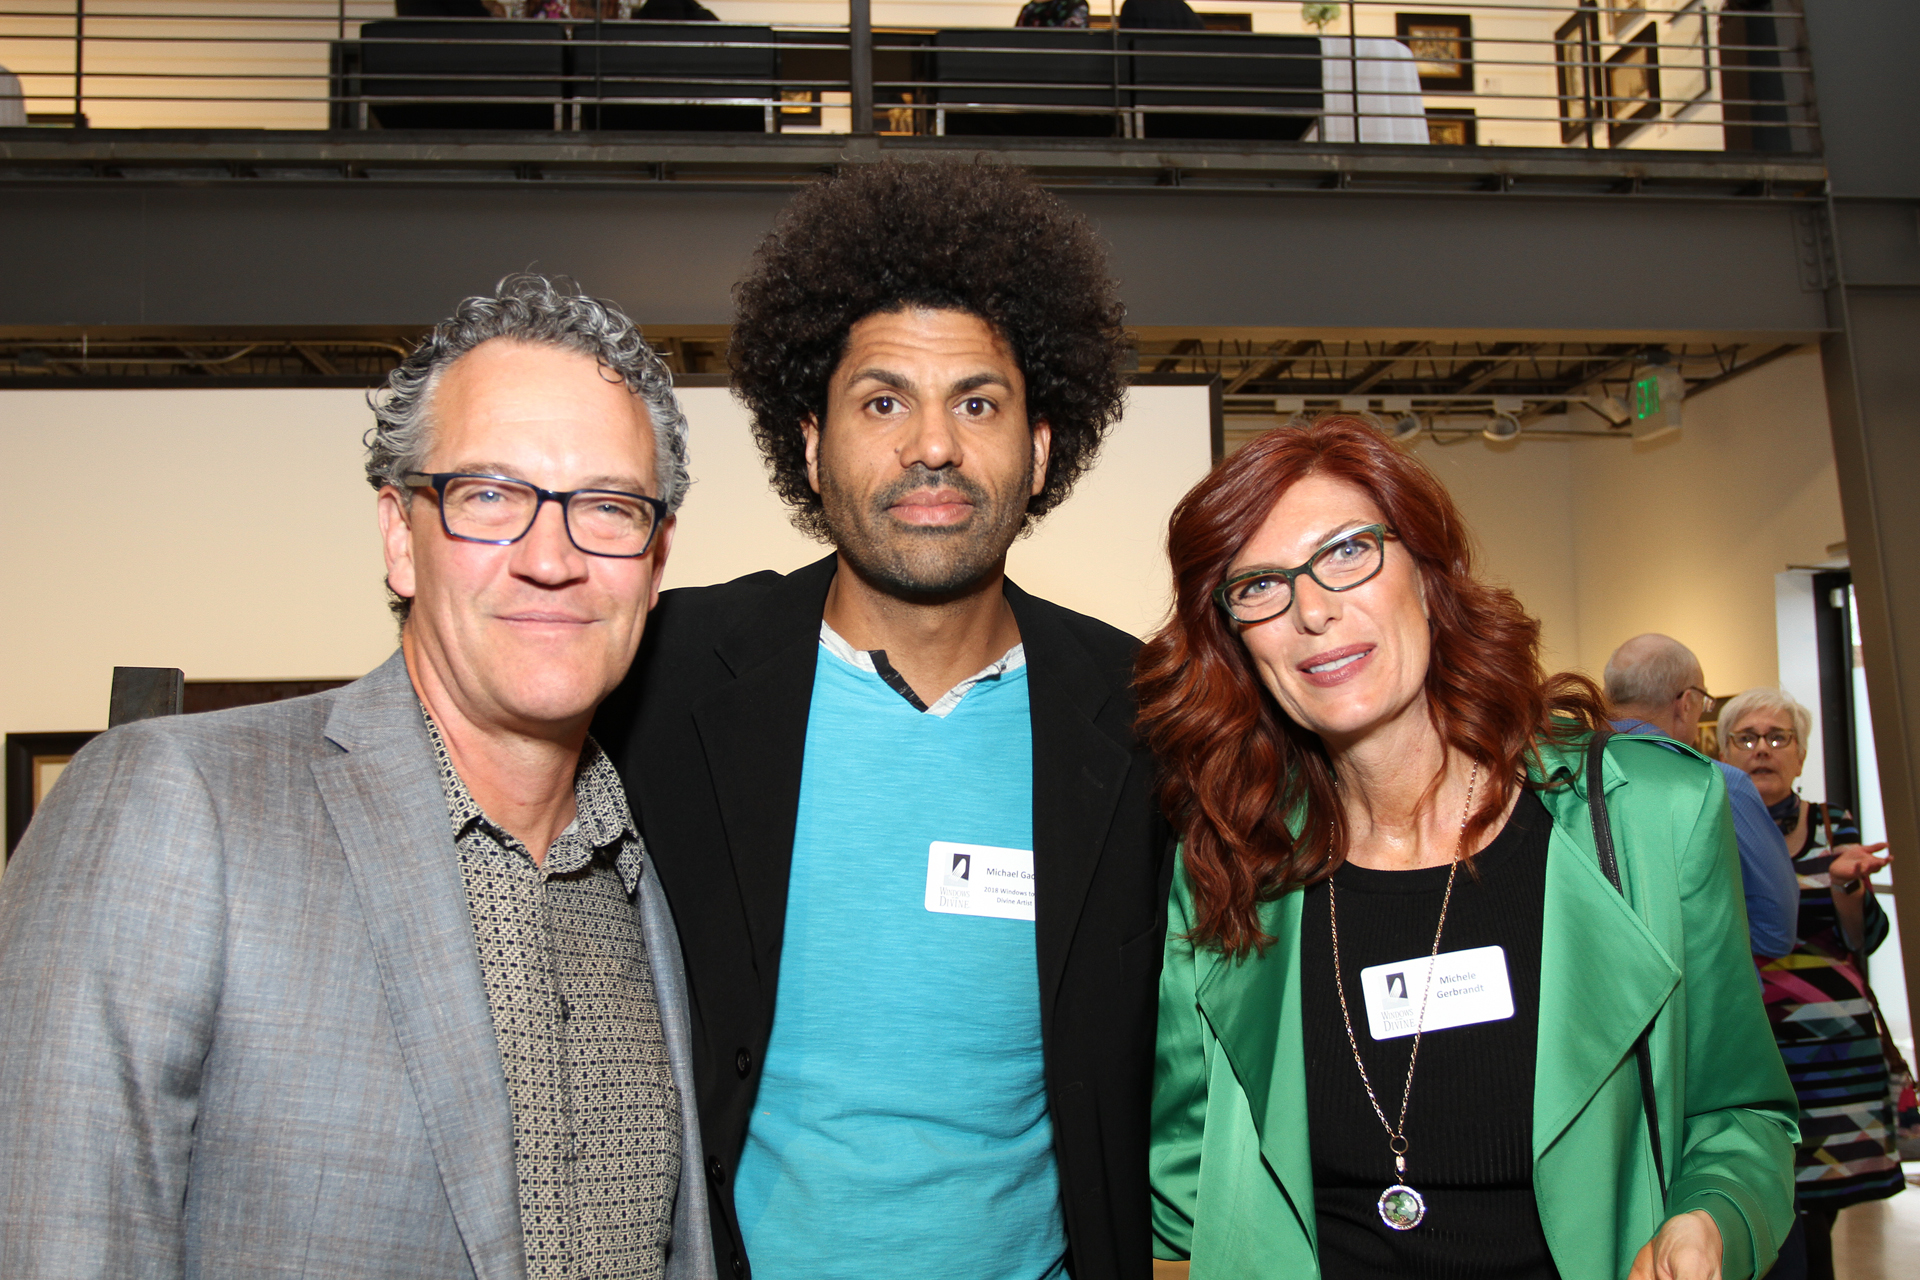 23 – IMG_5028_Opening Gala_Windows 2018 Artists, Ron Gerbrandt, Michael Gadlin & Michele Gerbrandt